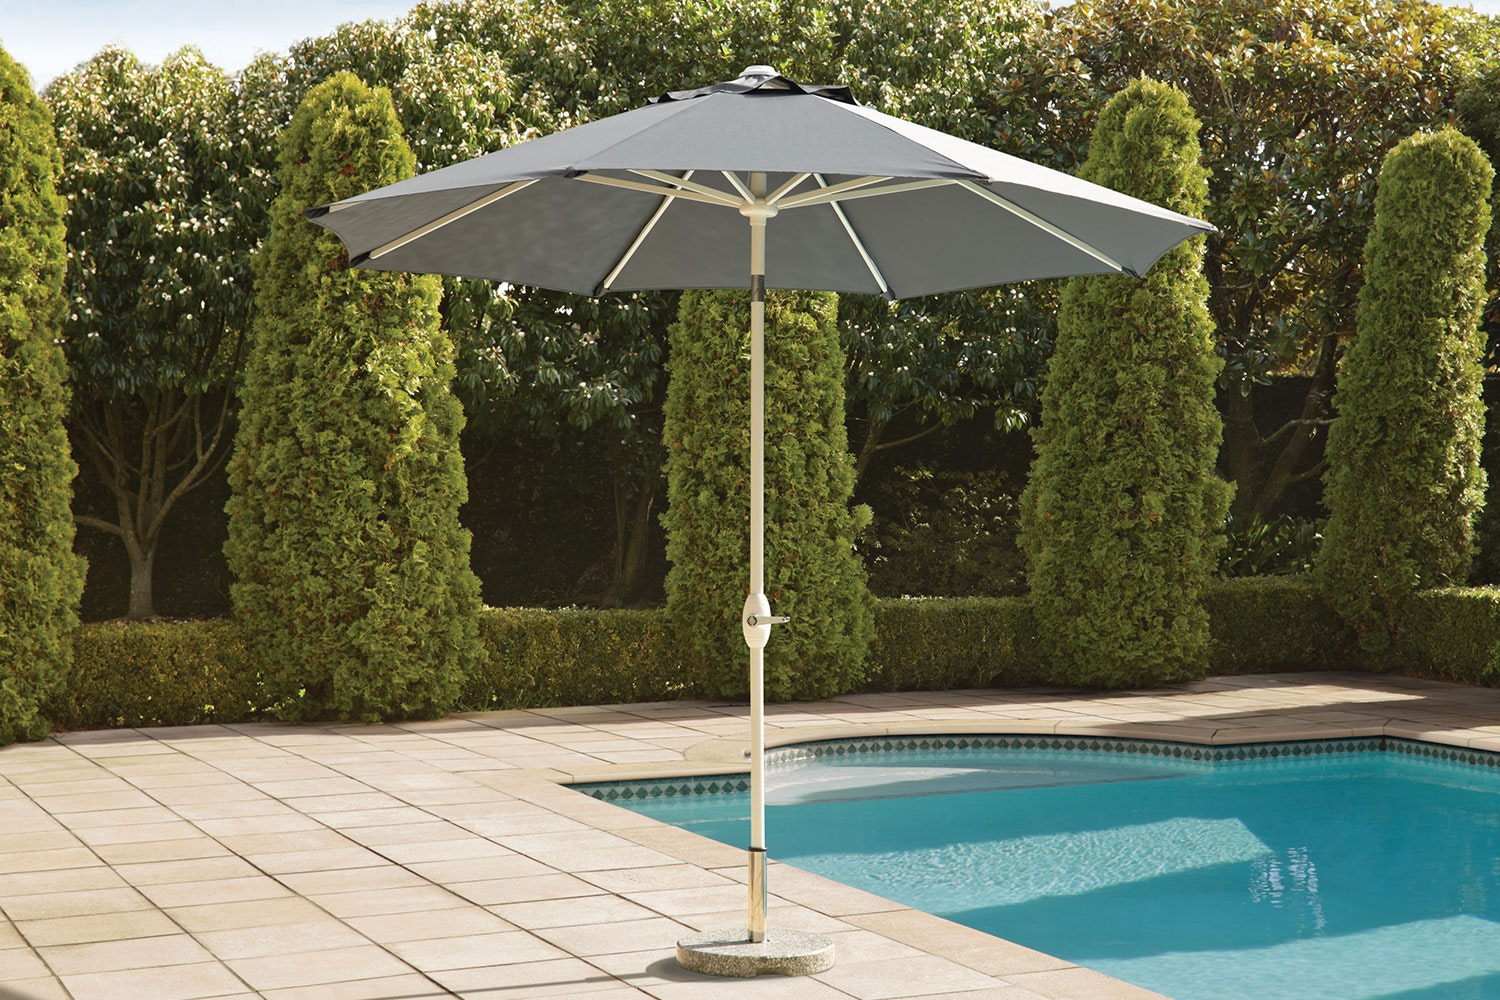 Florida Grey 2.7m Outdoor Umbrella by Peros